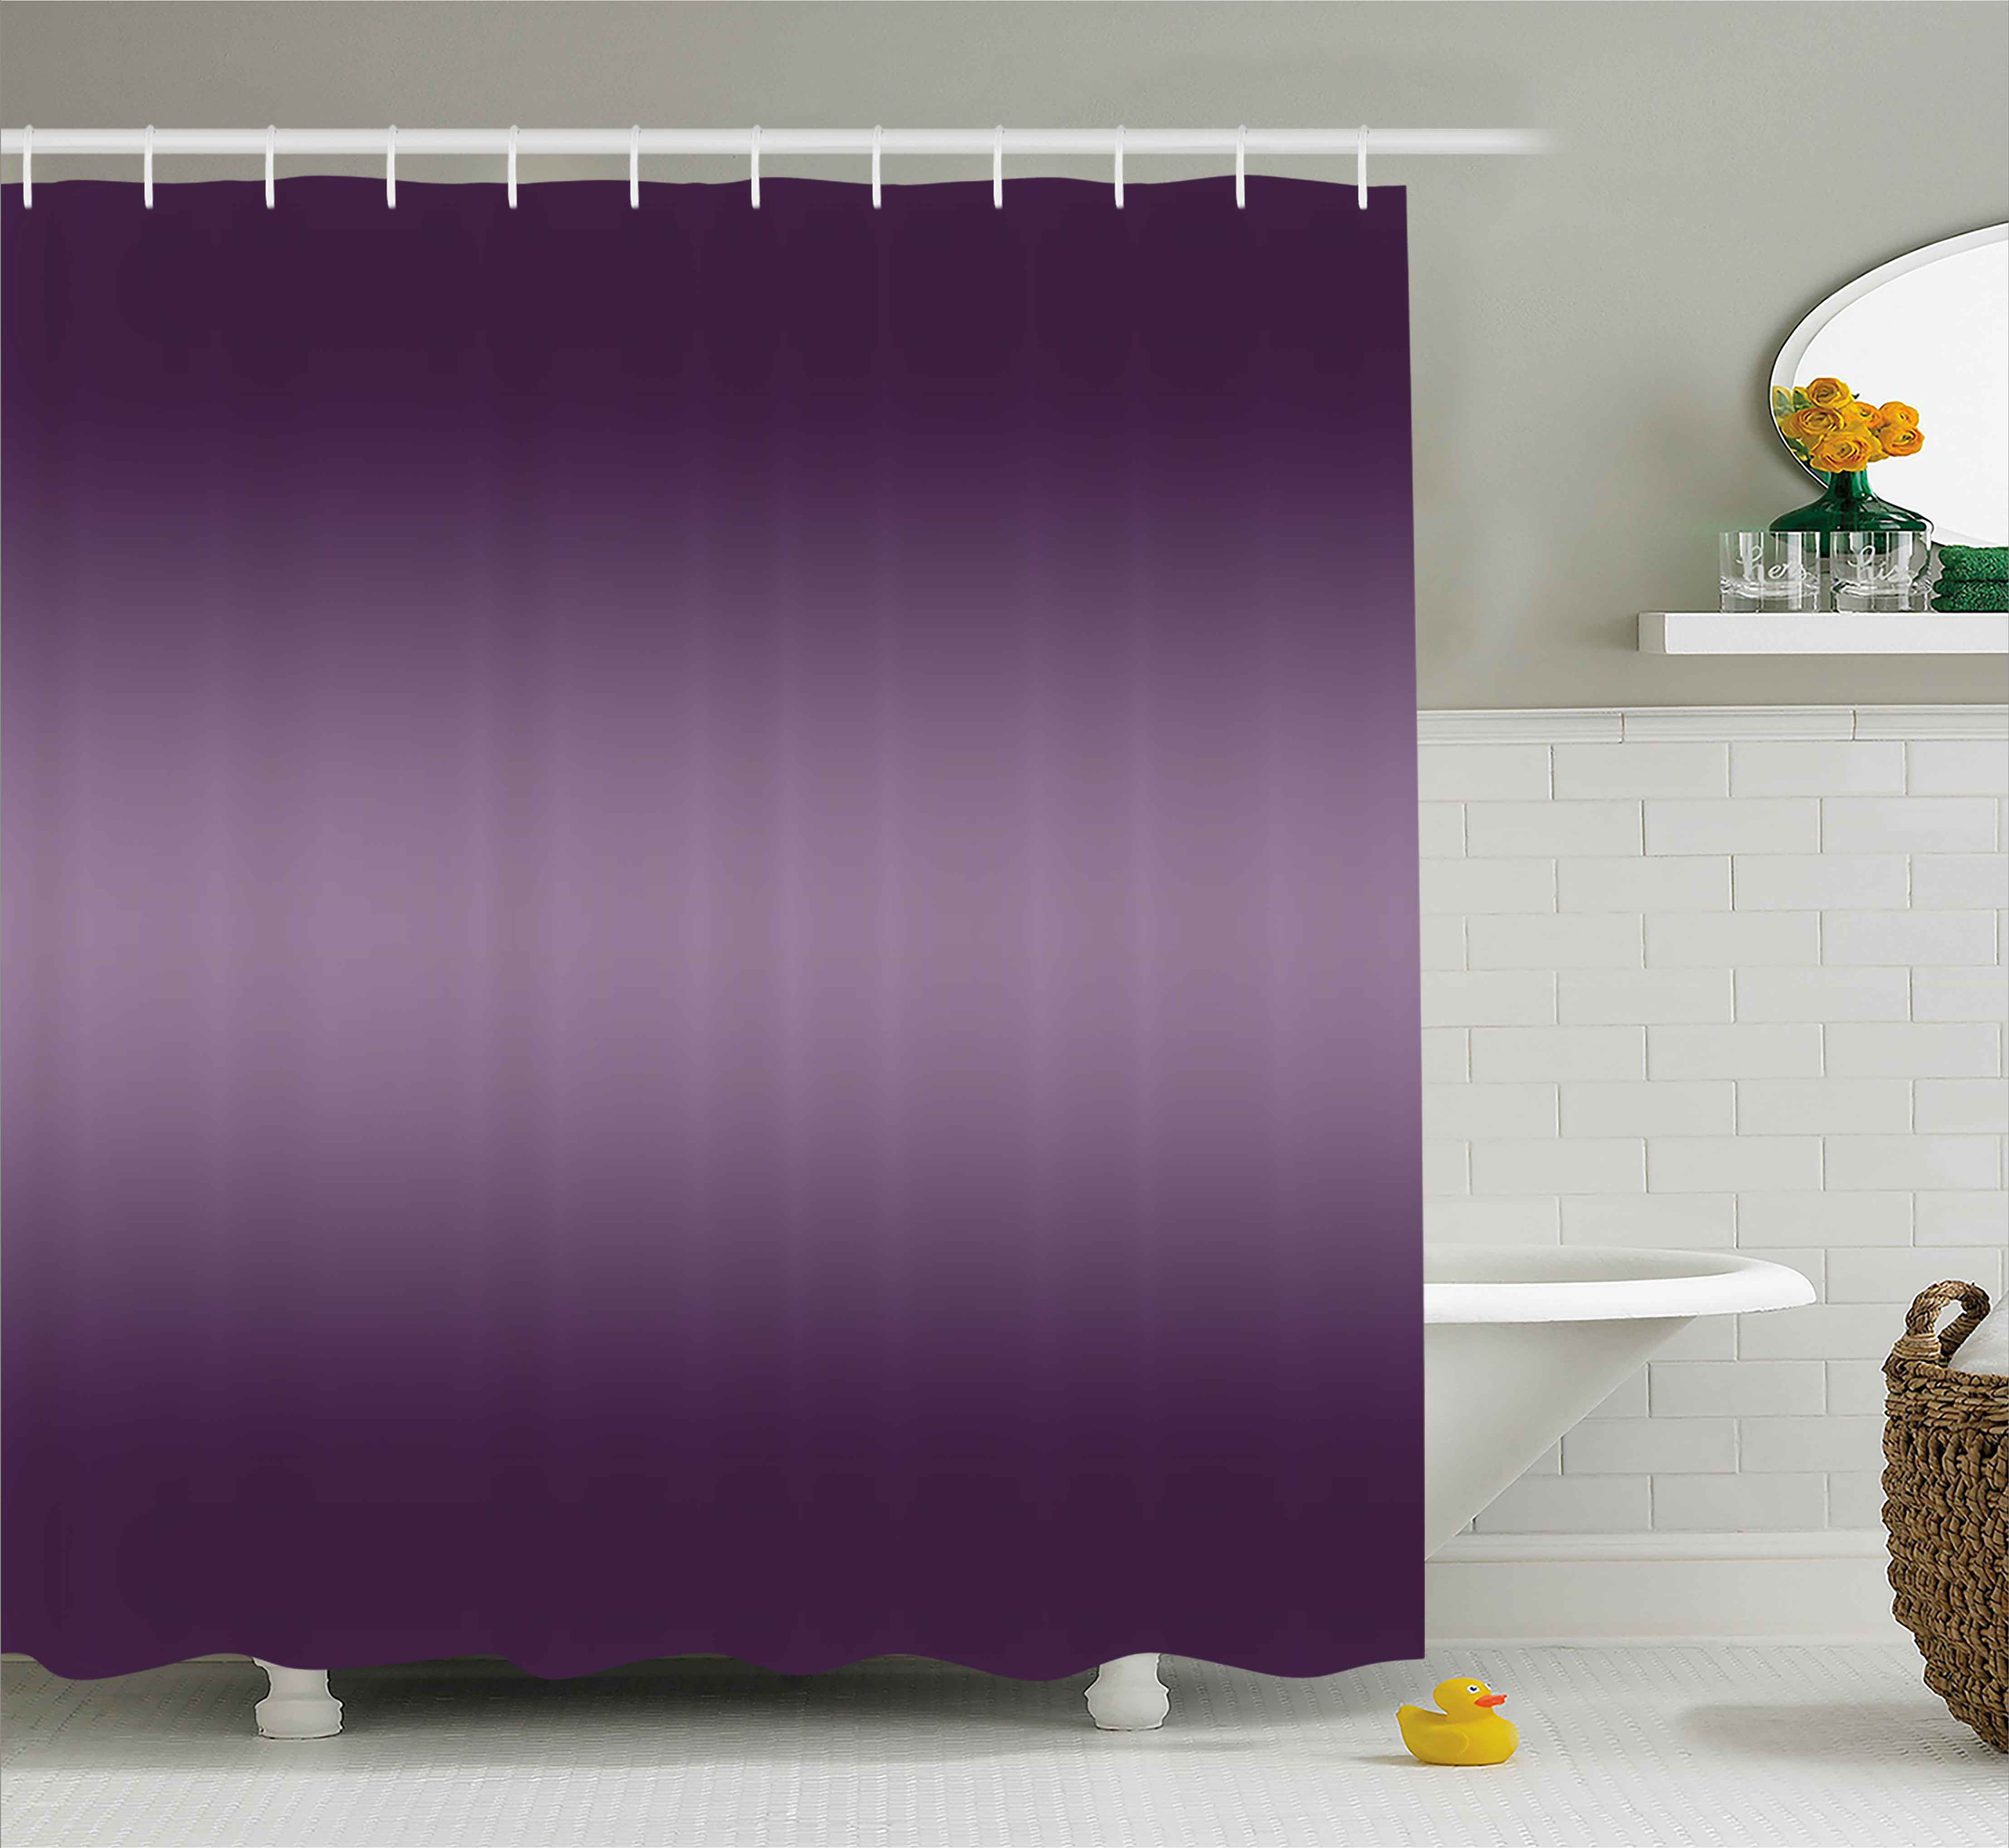 Amazing Ombre Shower Curtain, Hollywood Theater Inspired Purple Colored Modern  Design Room Decorations, Fabric Bathroom